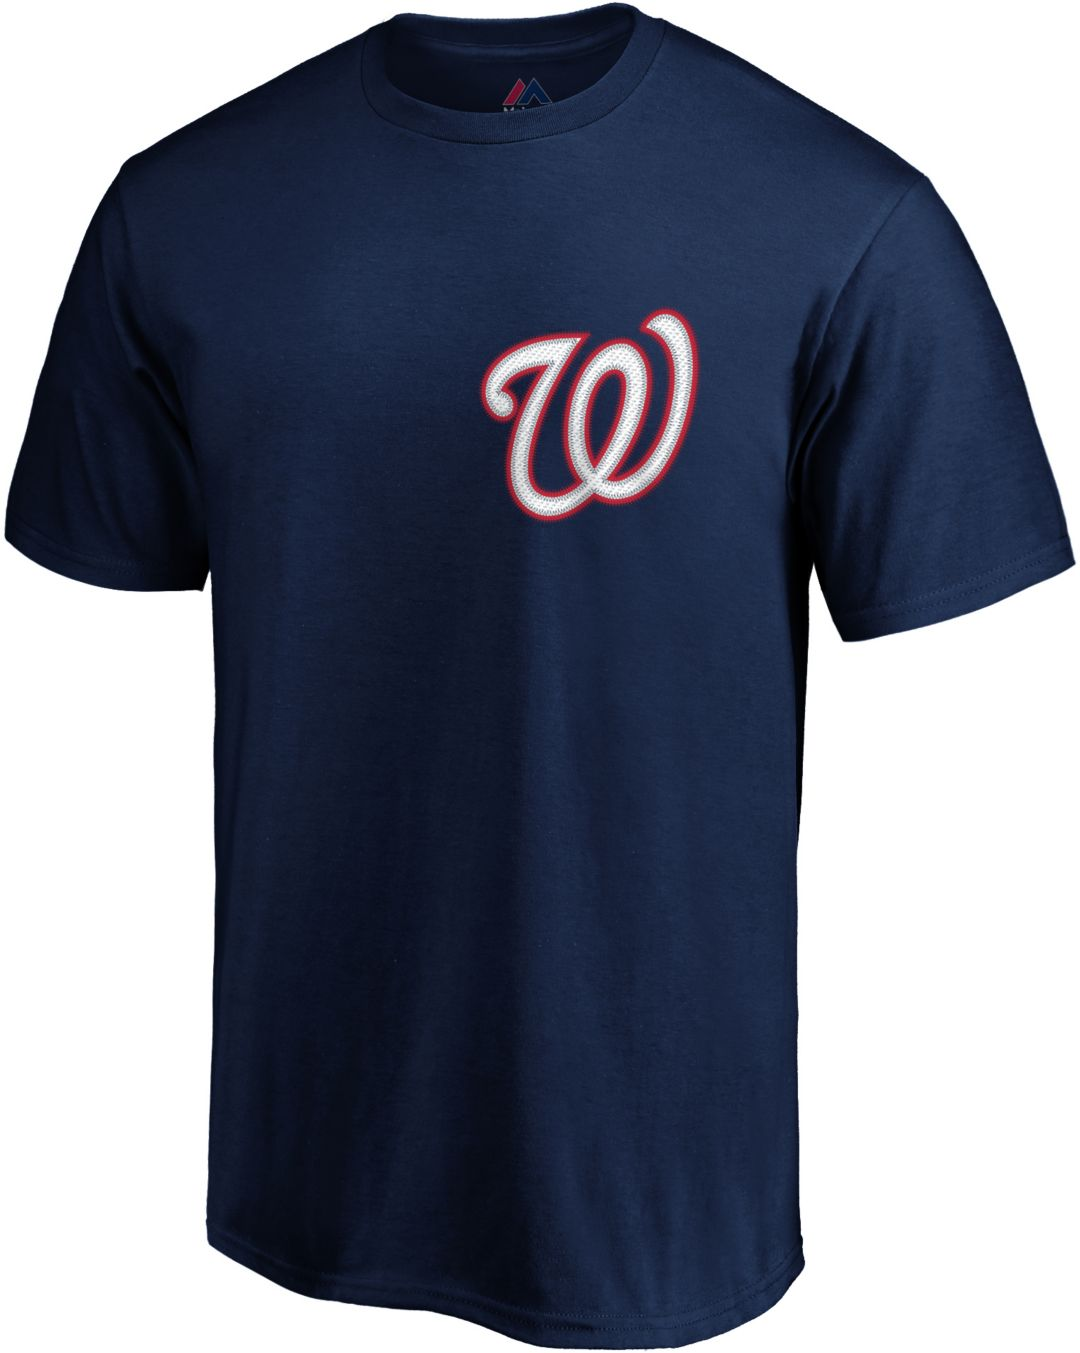 newest 7ee6e 3a6e6 Majestic Men's Washington Nationals Max Scherzer #31 Navy T-Shirt